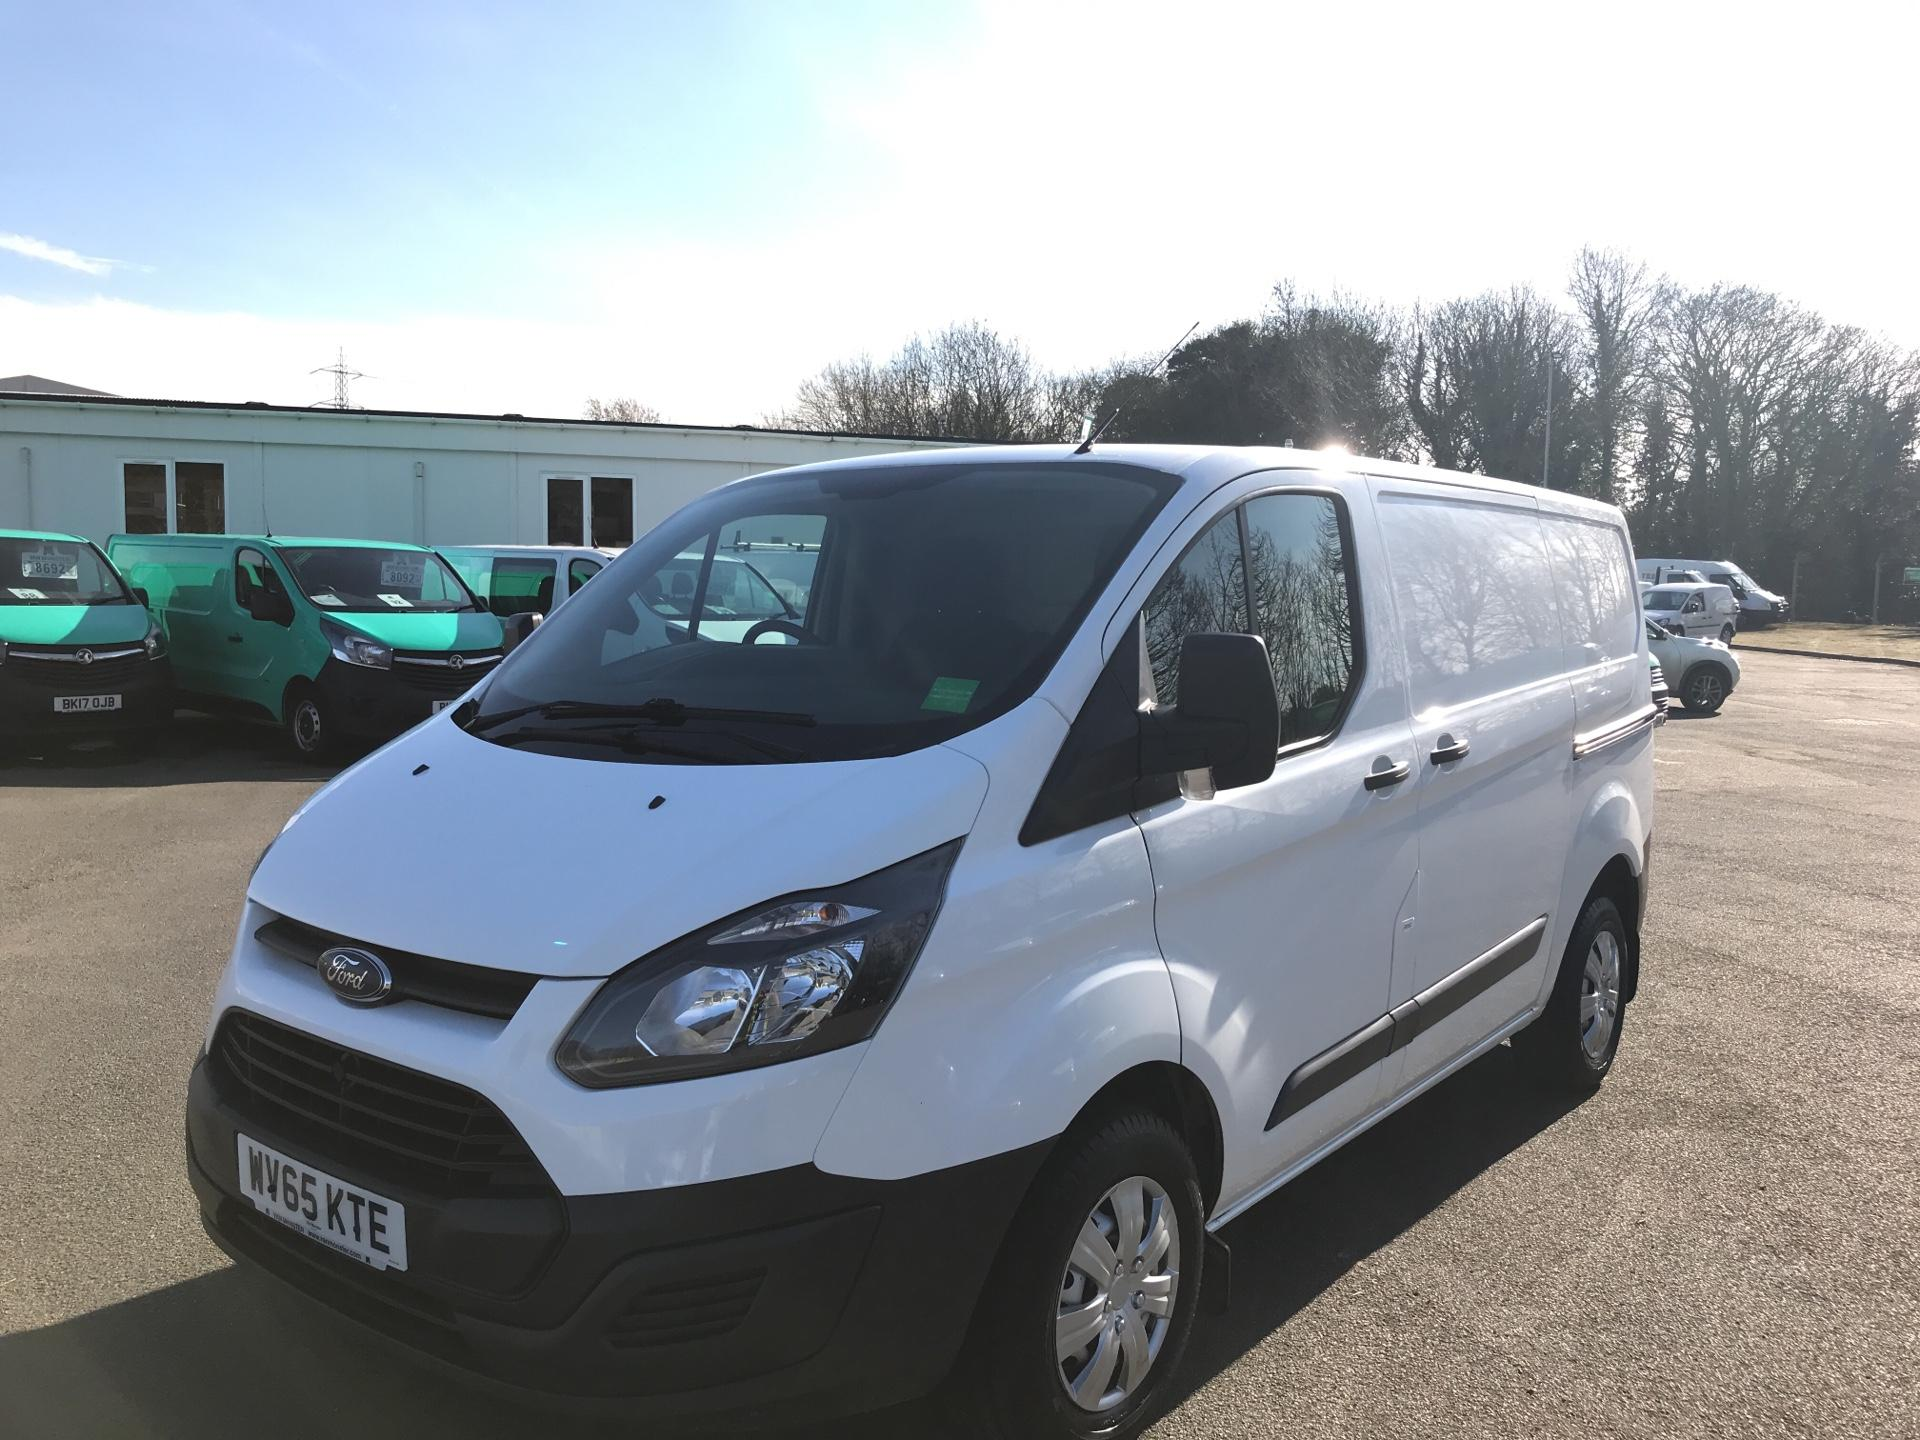 2015 Ford Transit Custom 290 L1 DIESEL FWD 2.2  TDCI 100PS LOW ROOF VAN EURO 5 (WV65KTE) Thumbnail 7